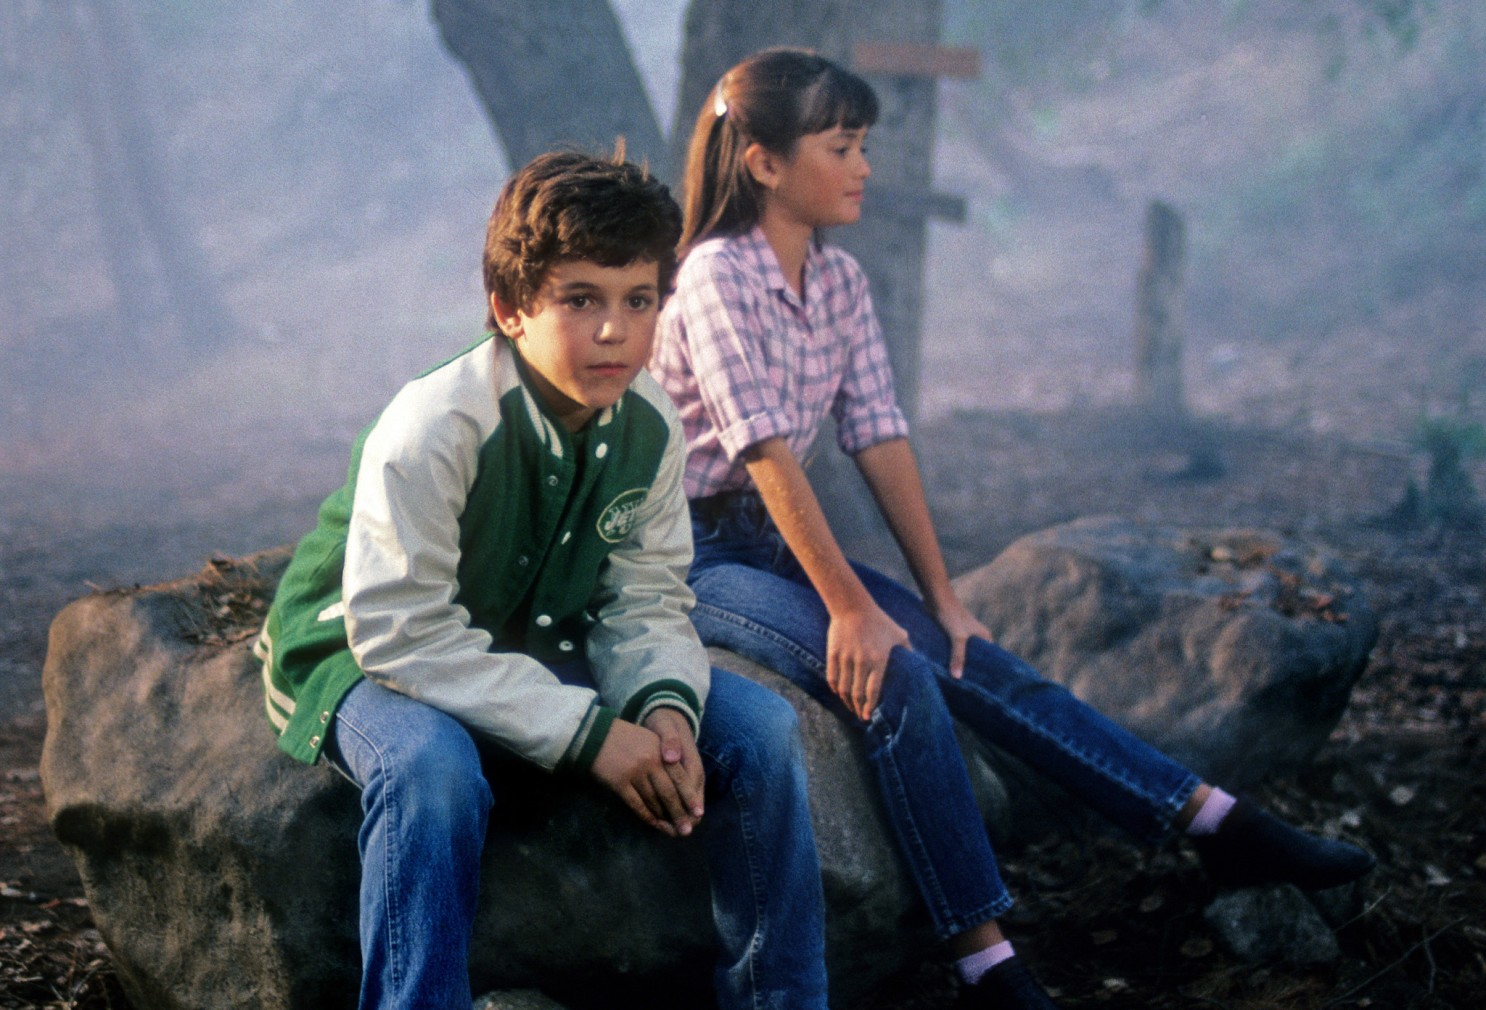 The Wonder Years Pilot Review